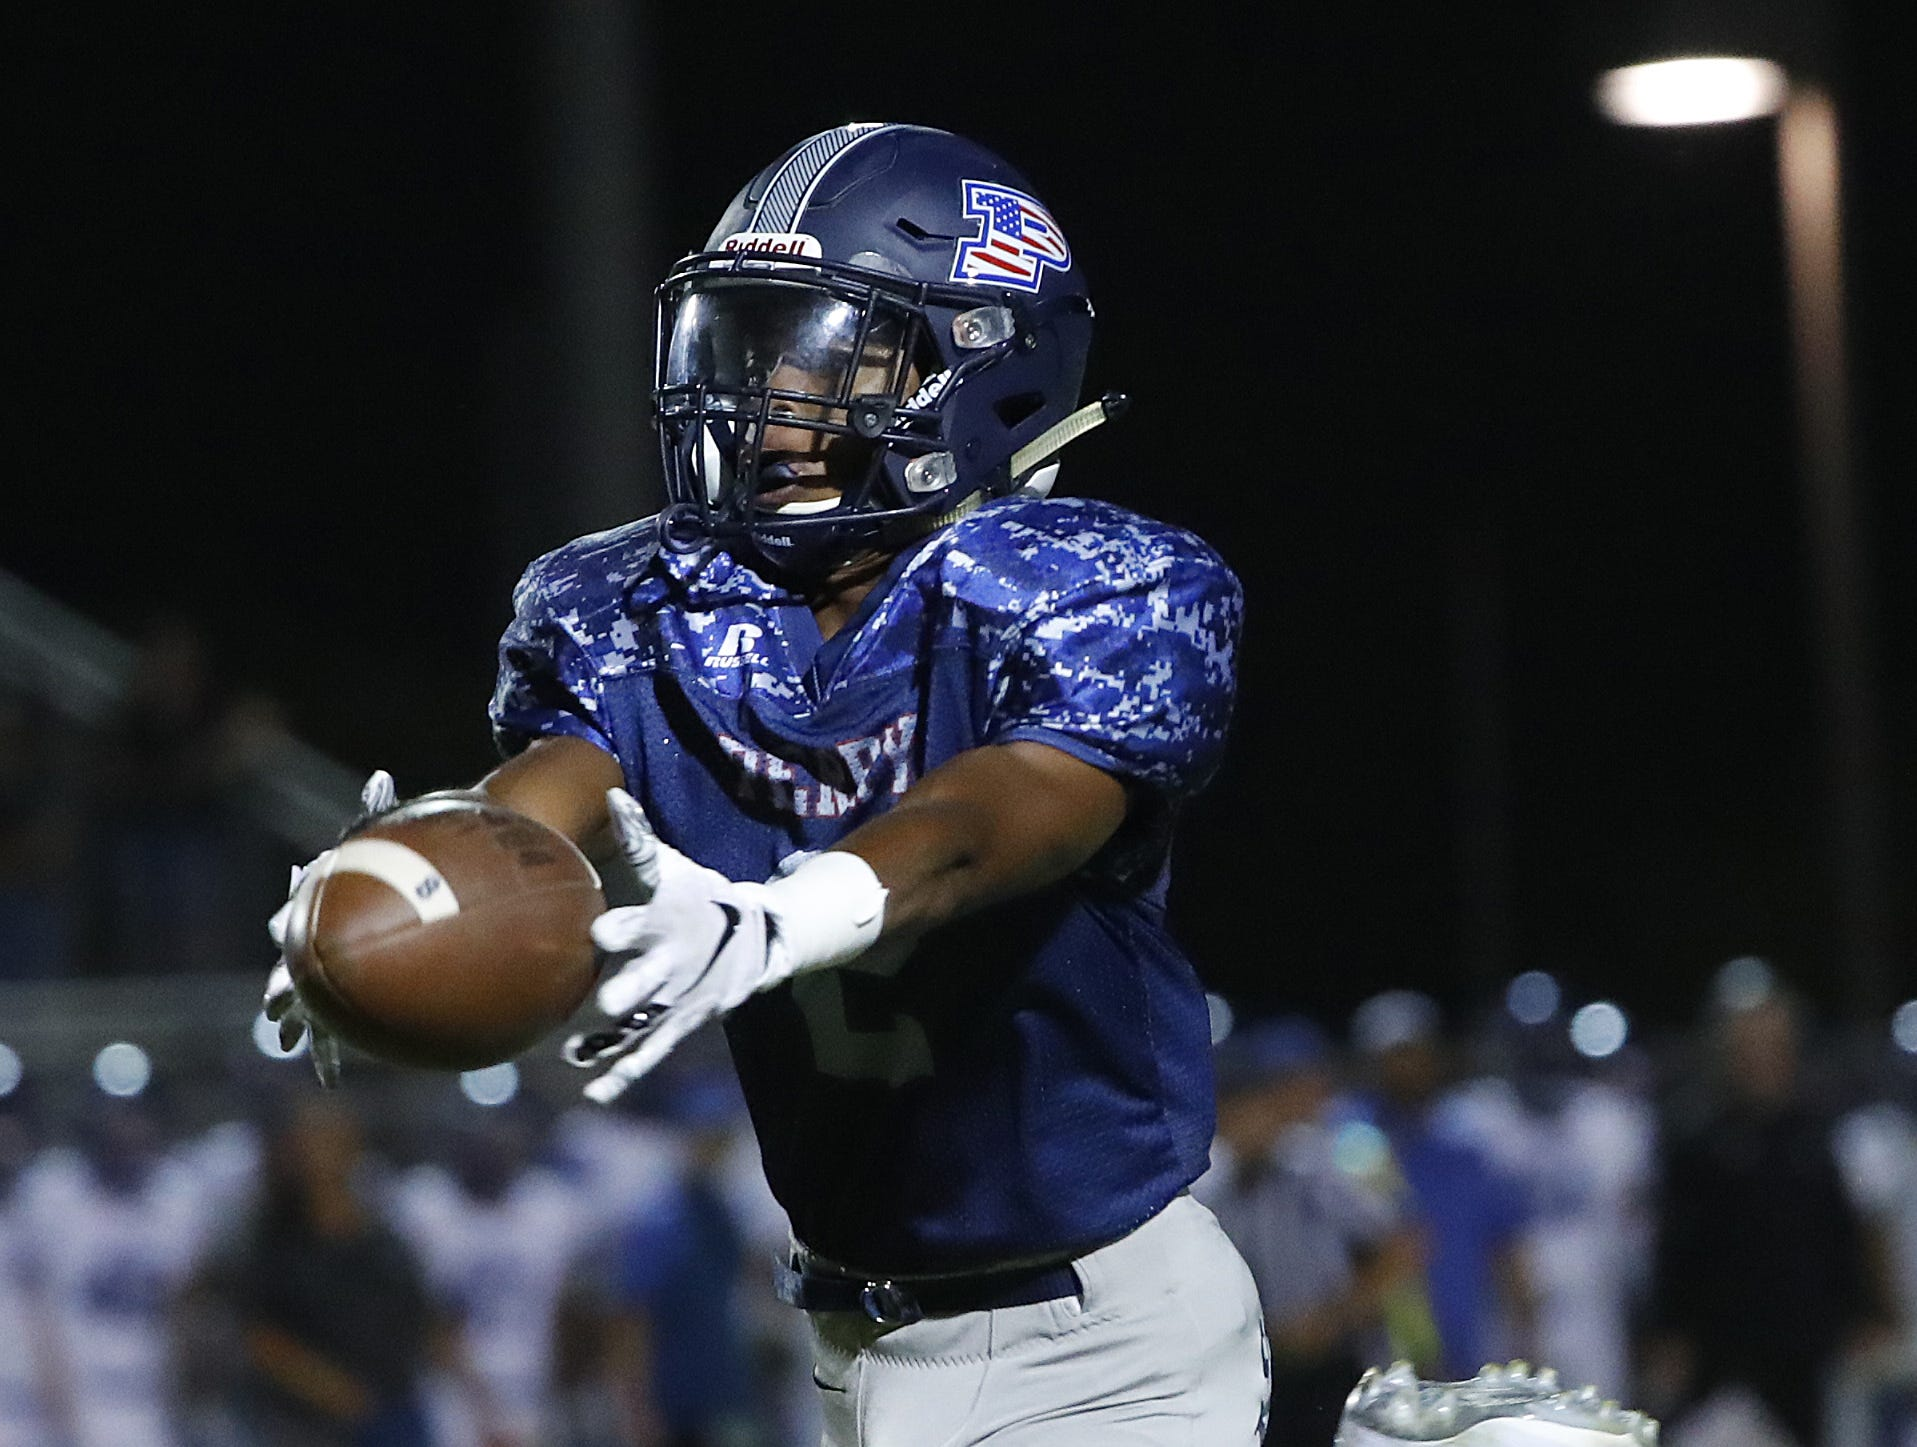 Perry's Jorden Young (2) narrowly misses a catch against Chandler at Perry High School in Gilbert, Ariz. on Sept. 28, 2018.  #azhsfb